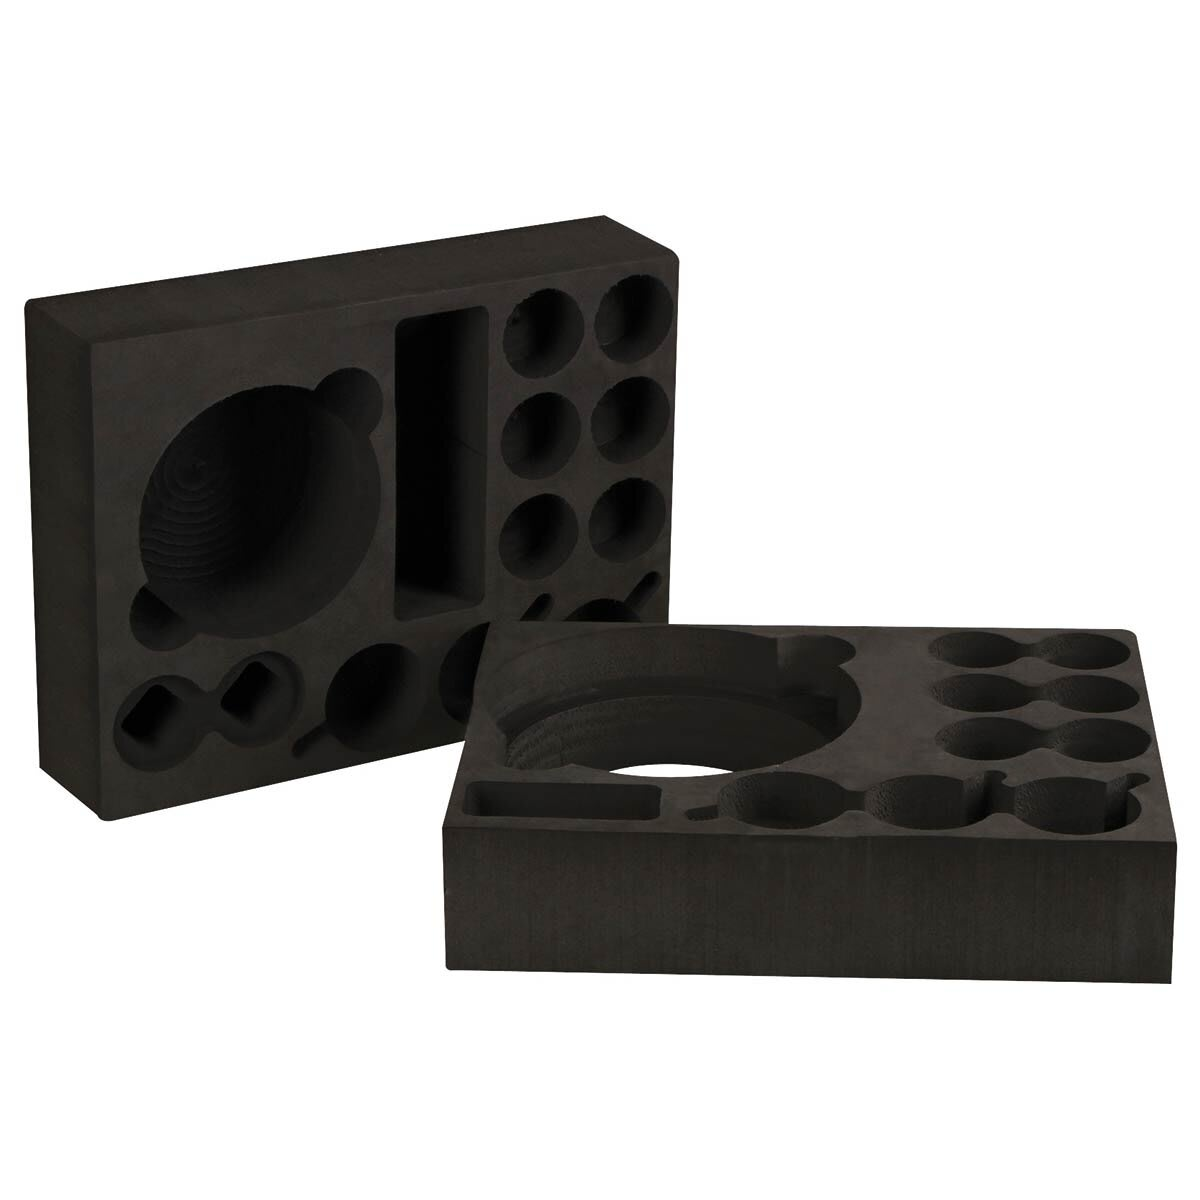 Natural Instincts Foam Insert for 6 Person Crockery Box Set